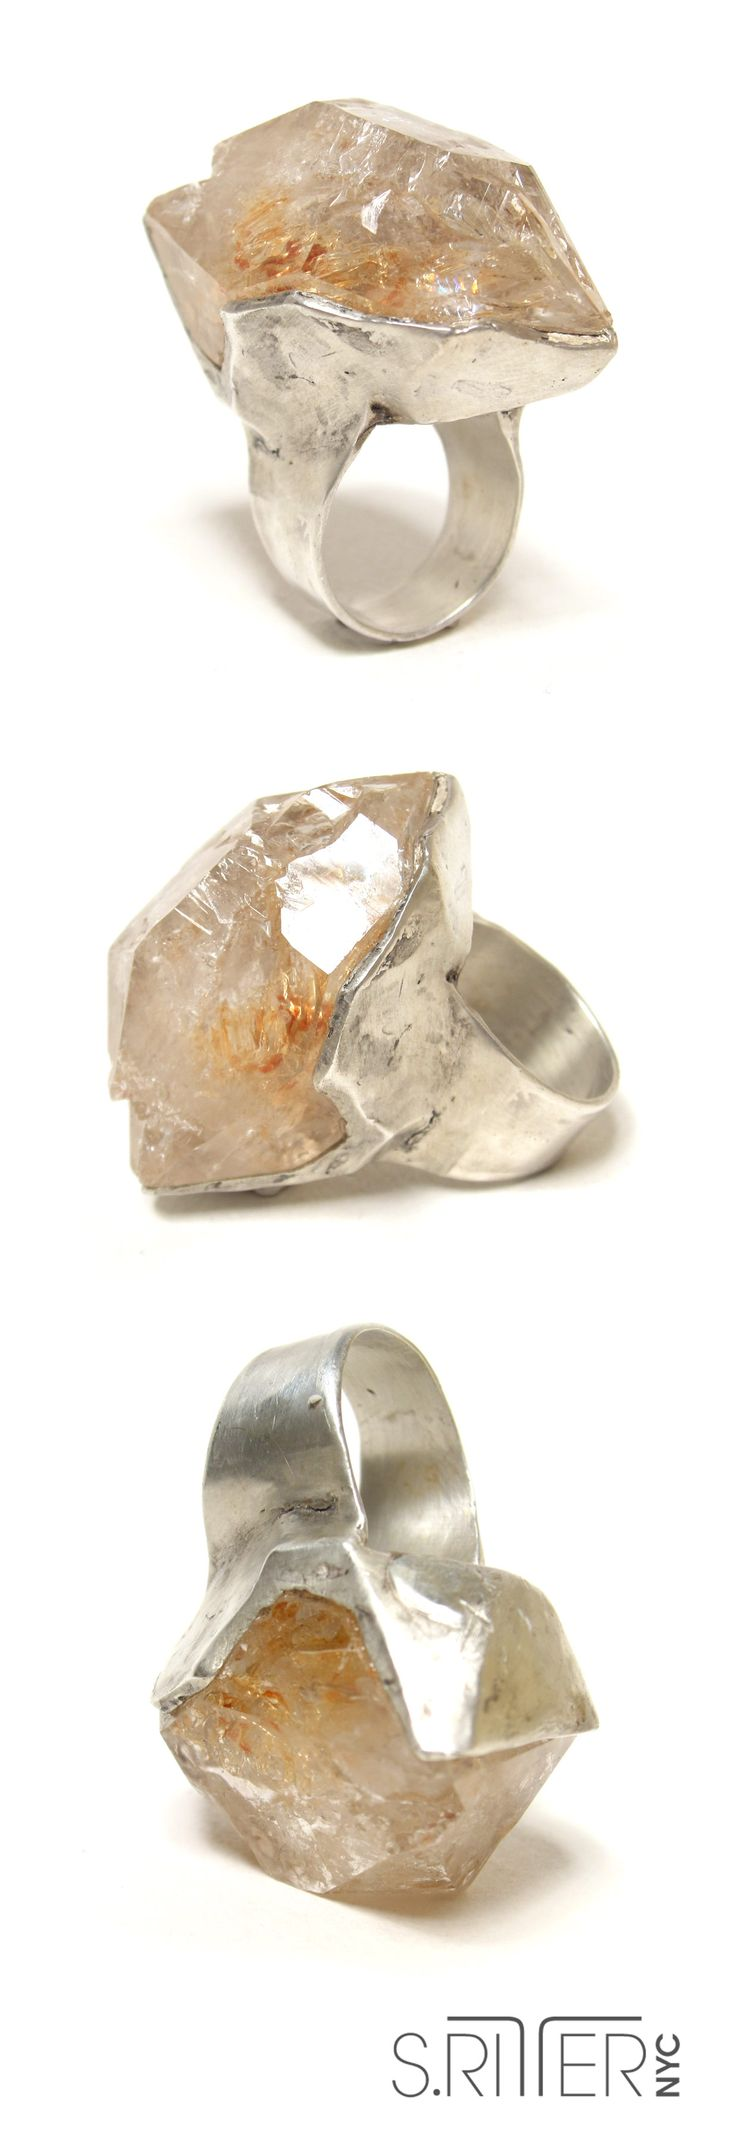 Is quartz considered a natural stone - Ice For Your Hand Raw Fenster Quartz Set In Sterling Silver Raw